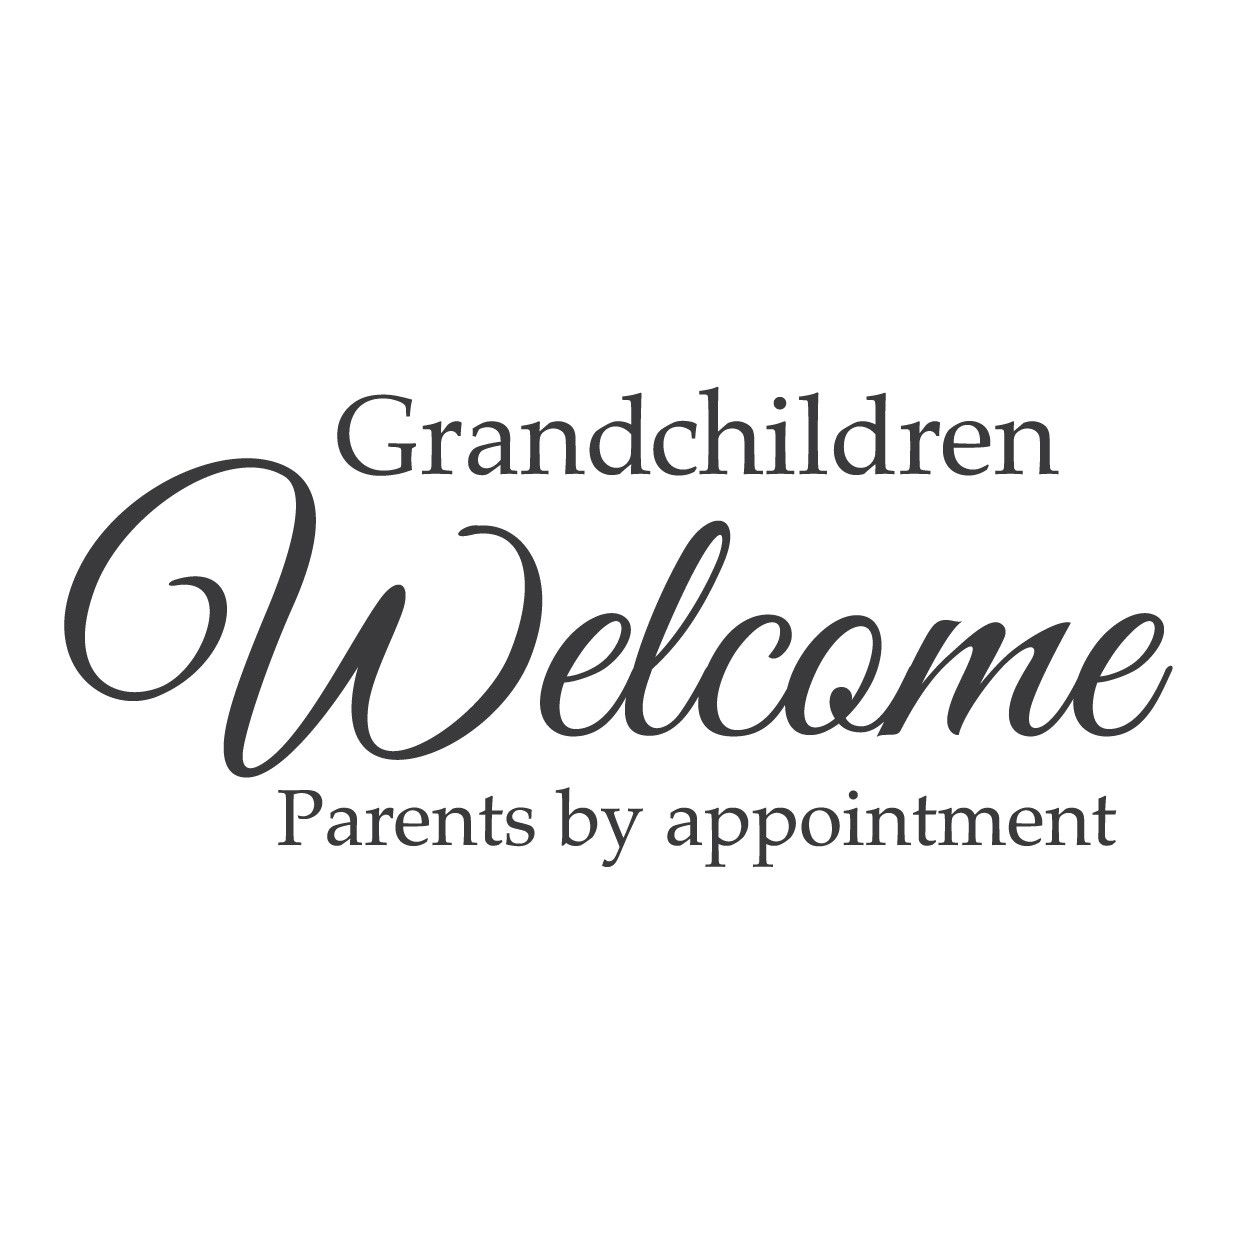 """I Love My Granddaughter Quotes Wall Quotes Wall Decals  """"grandchildren Welcomeparents."""